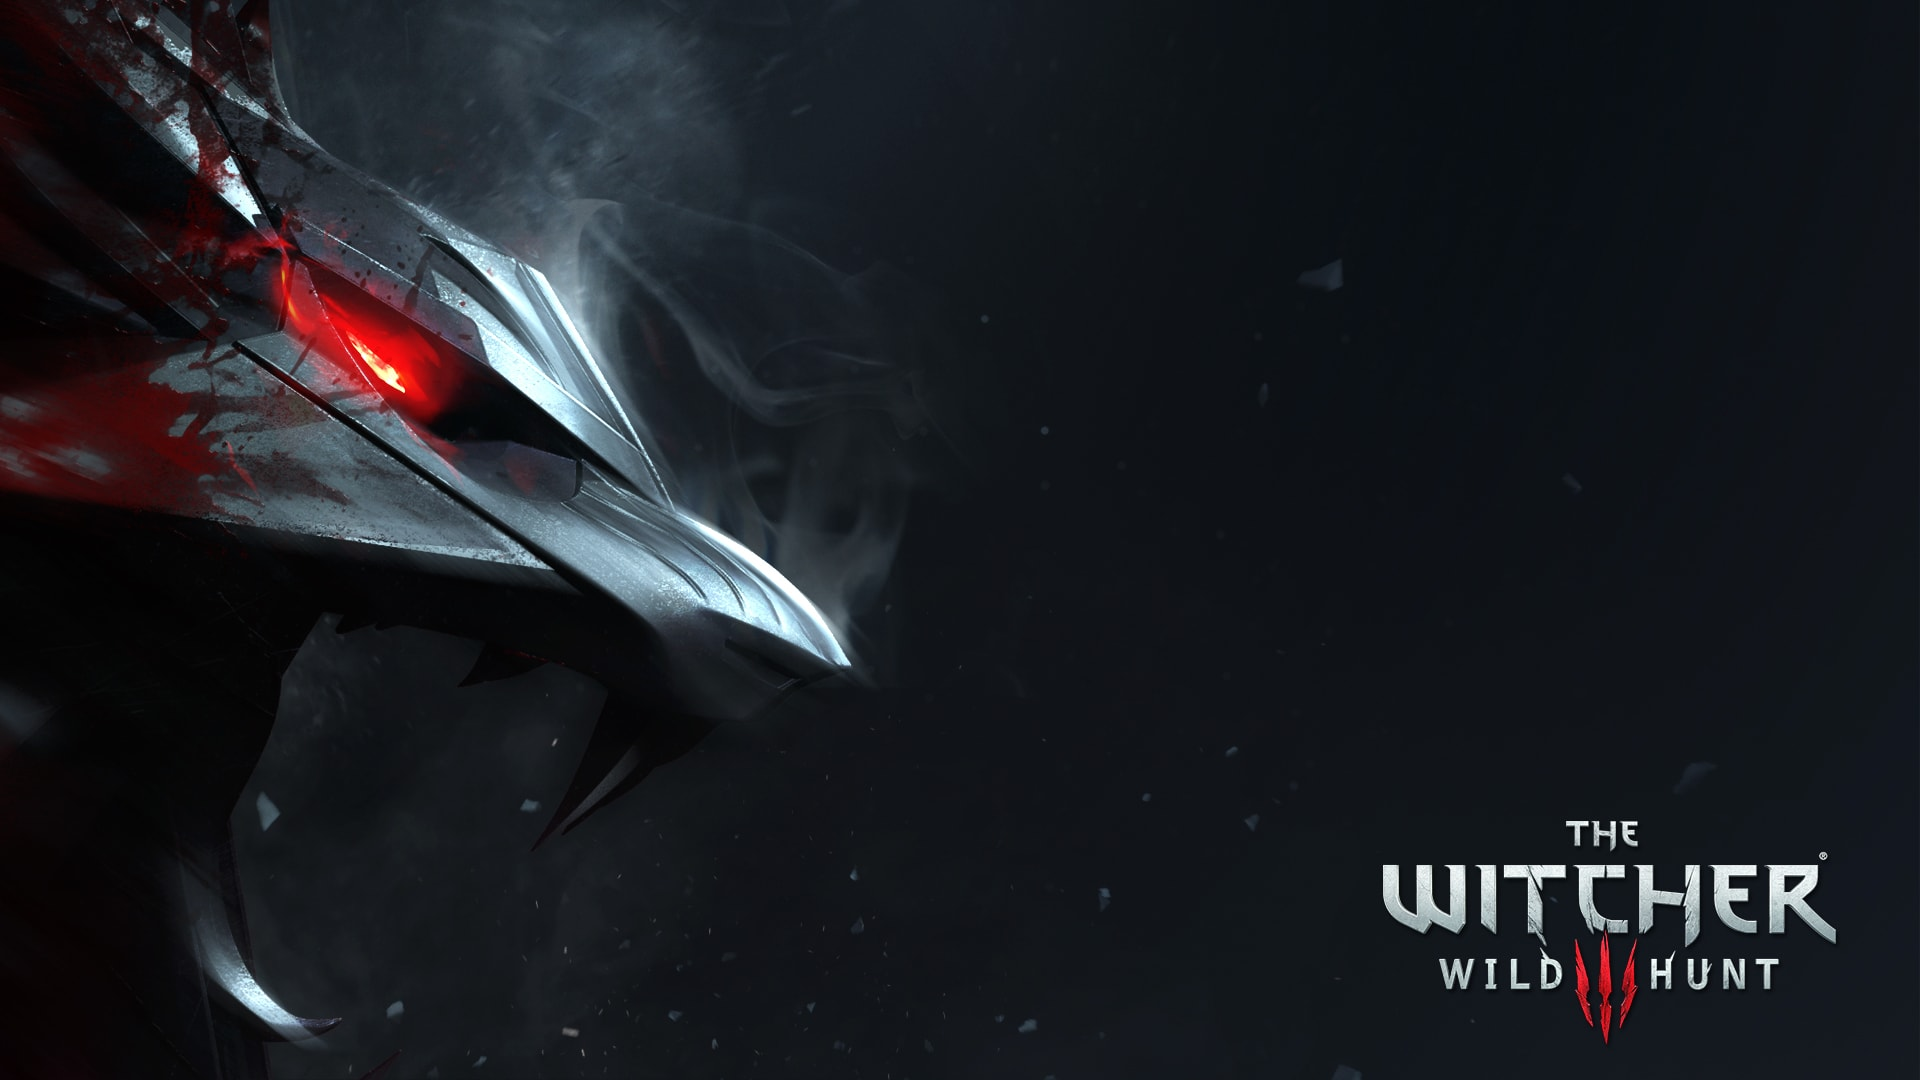 the witcher 3 wild hunt hd wallpapers 1920 x 1080